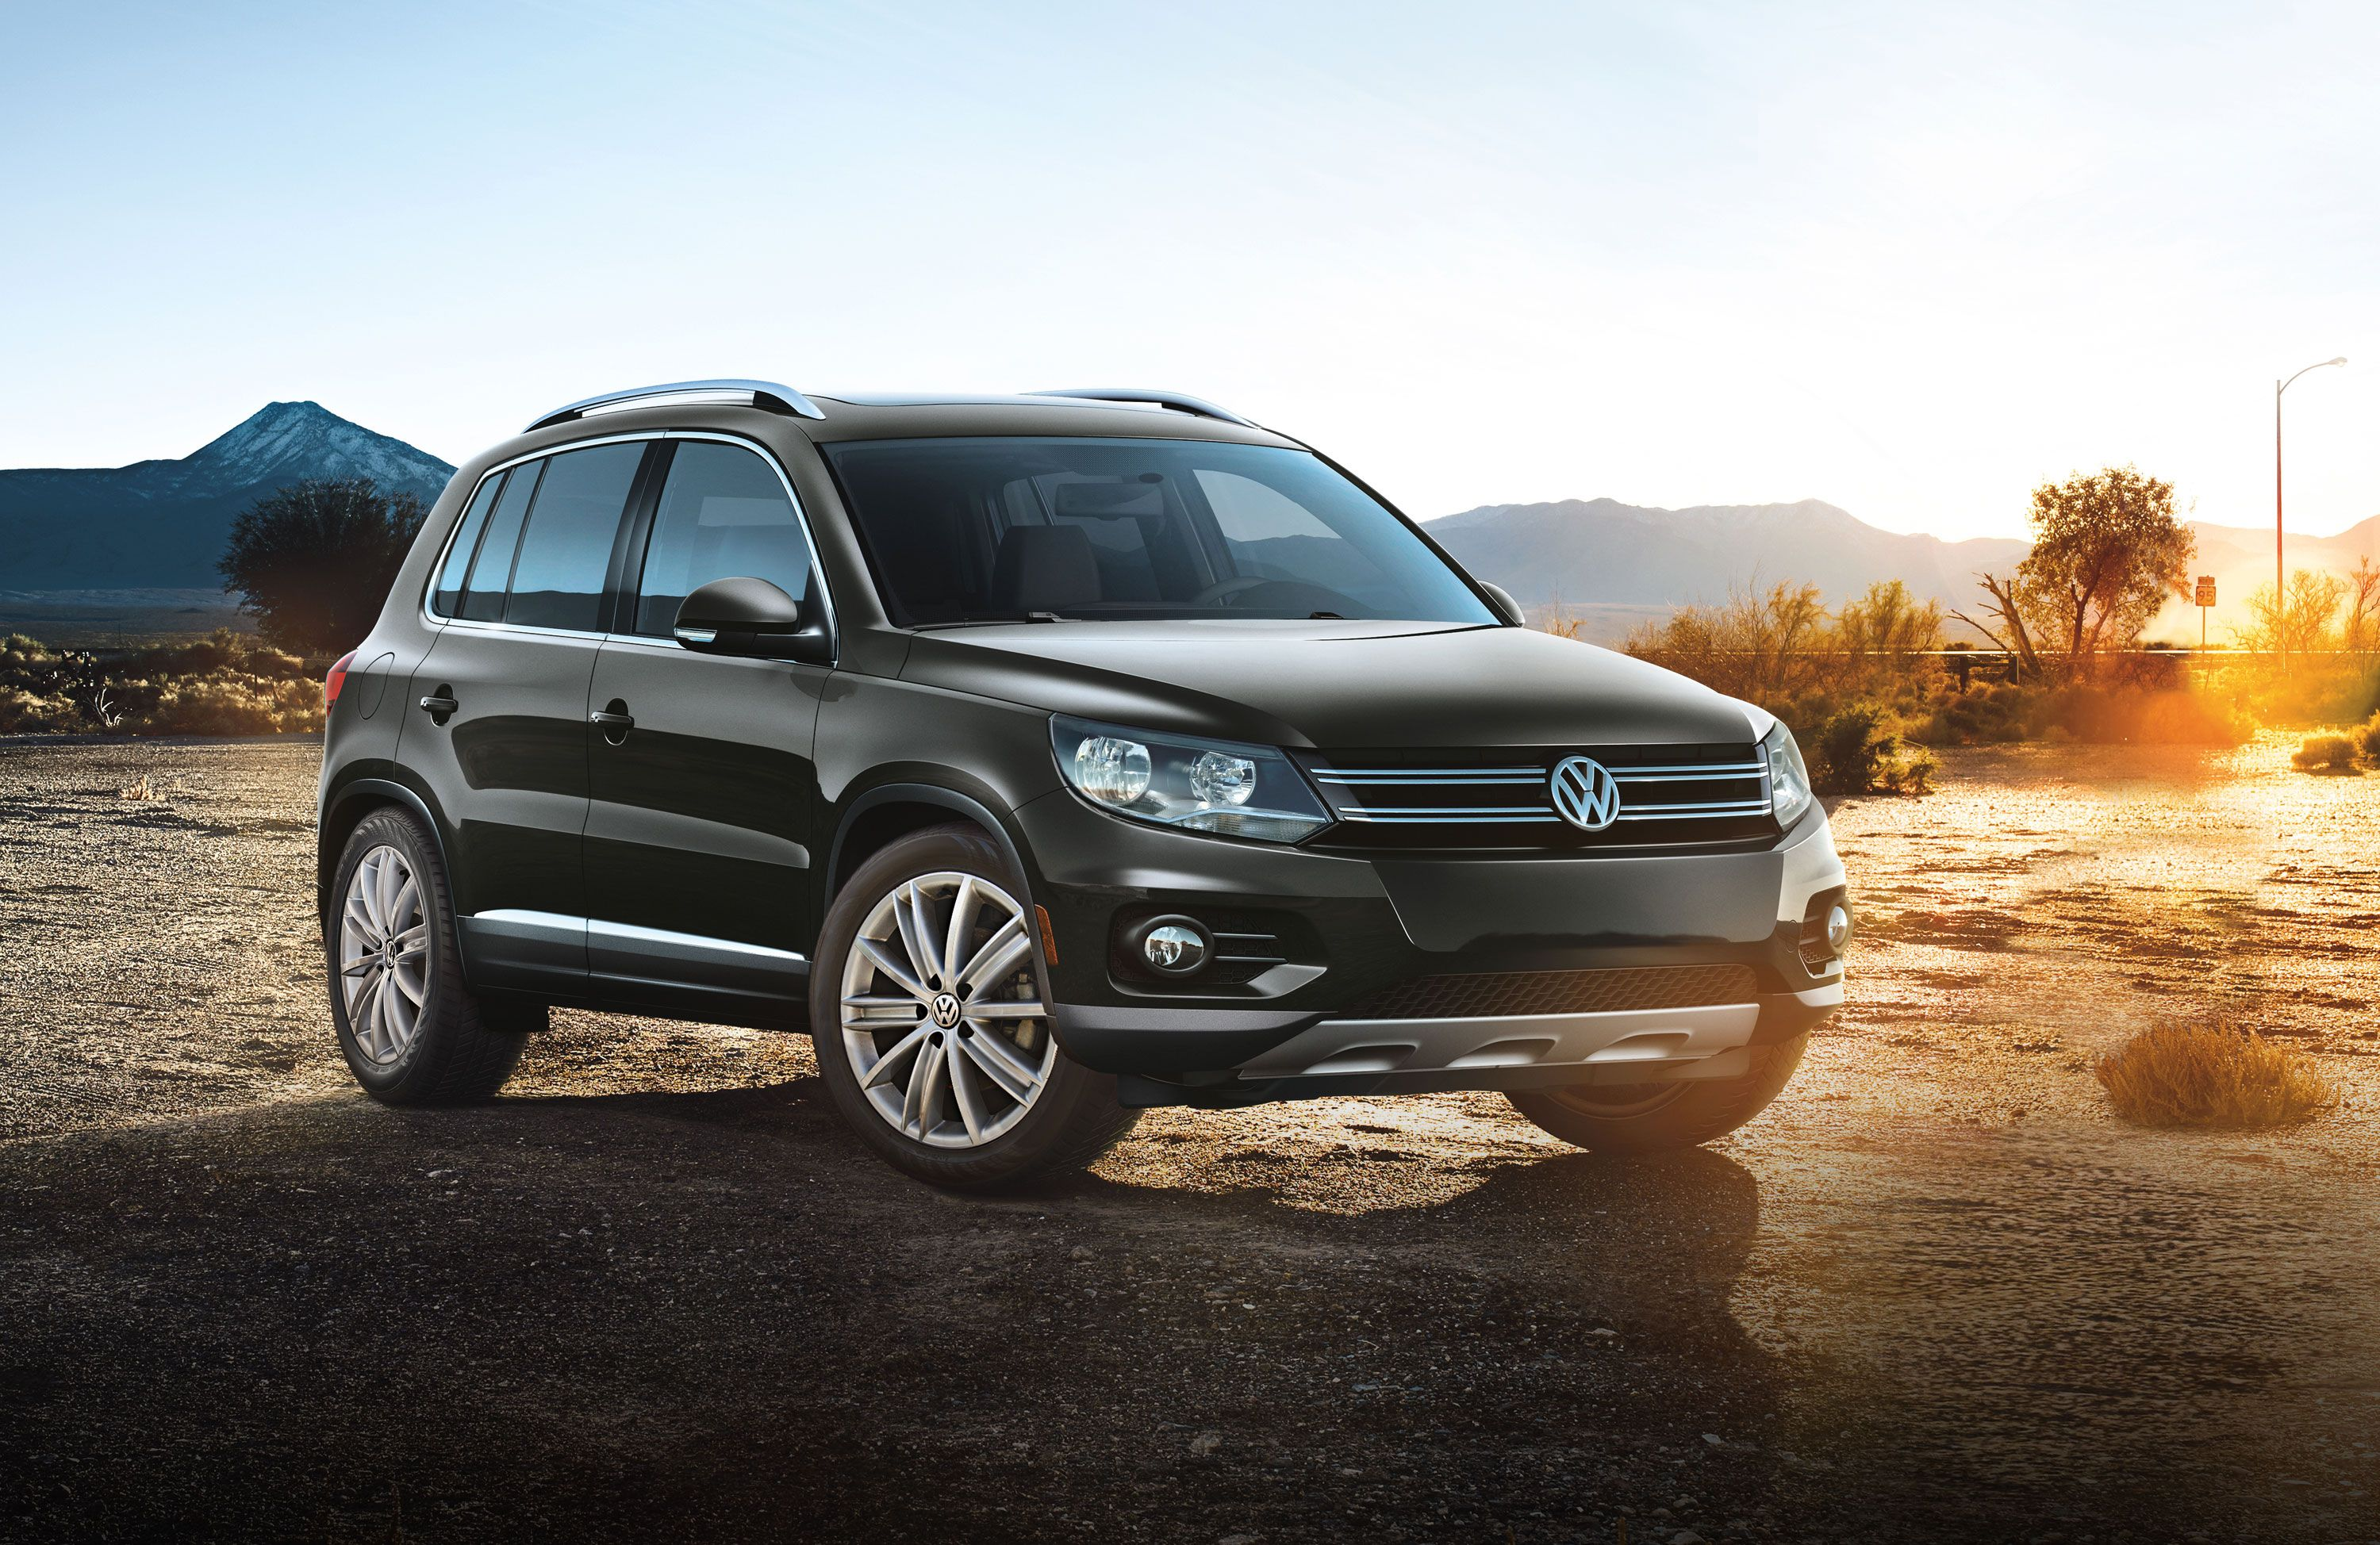 2015 tiguan compact suv volkswagen car car. Black Bedroom Furniture Sets. Home Design Ideas